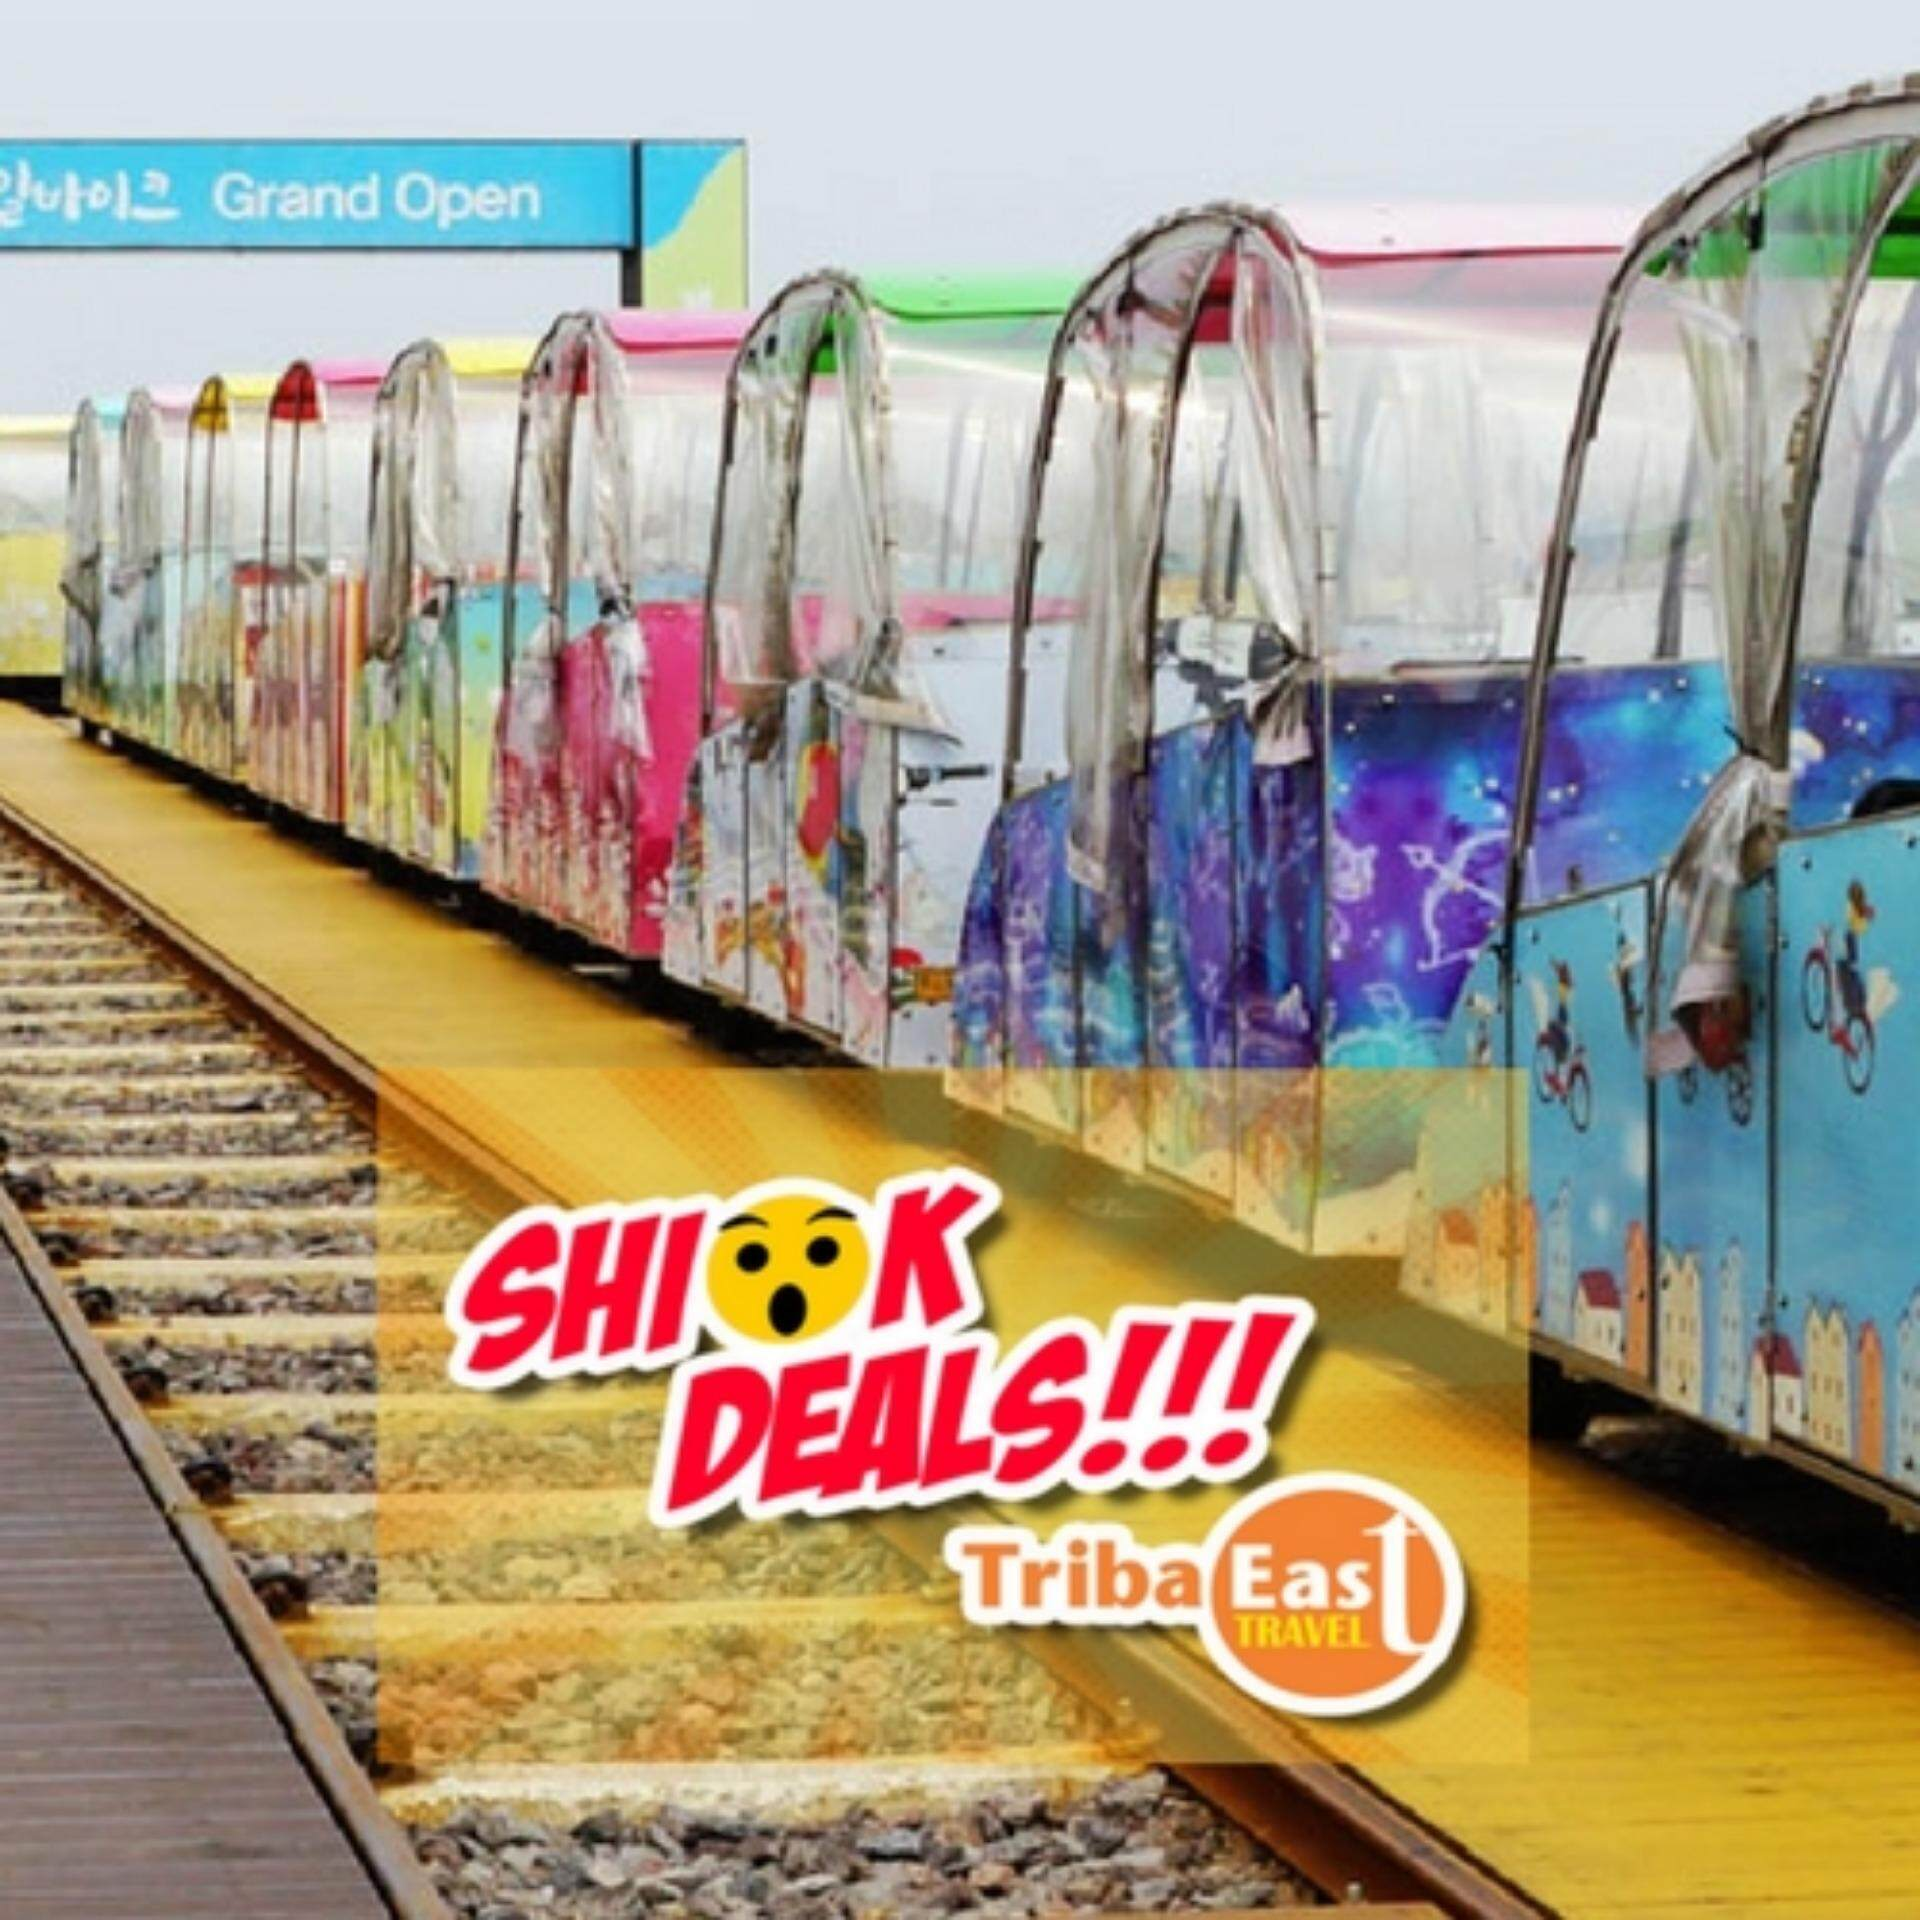 Digital Vouchers Hotel And Tour Buy Singapore Duck Voucher Korea Gangchon Rail Bike 2 Seater